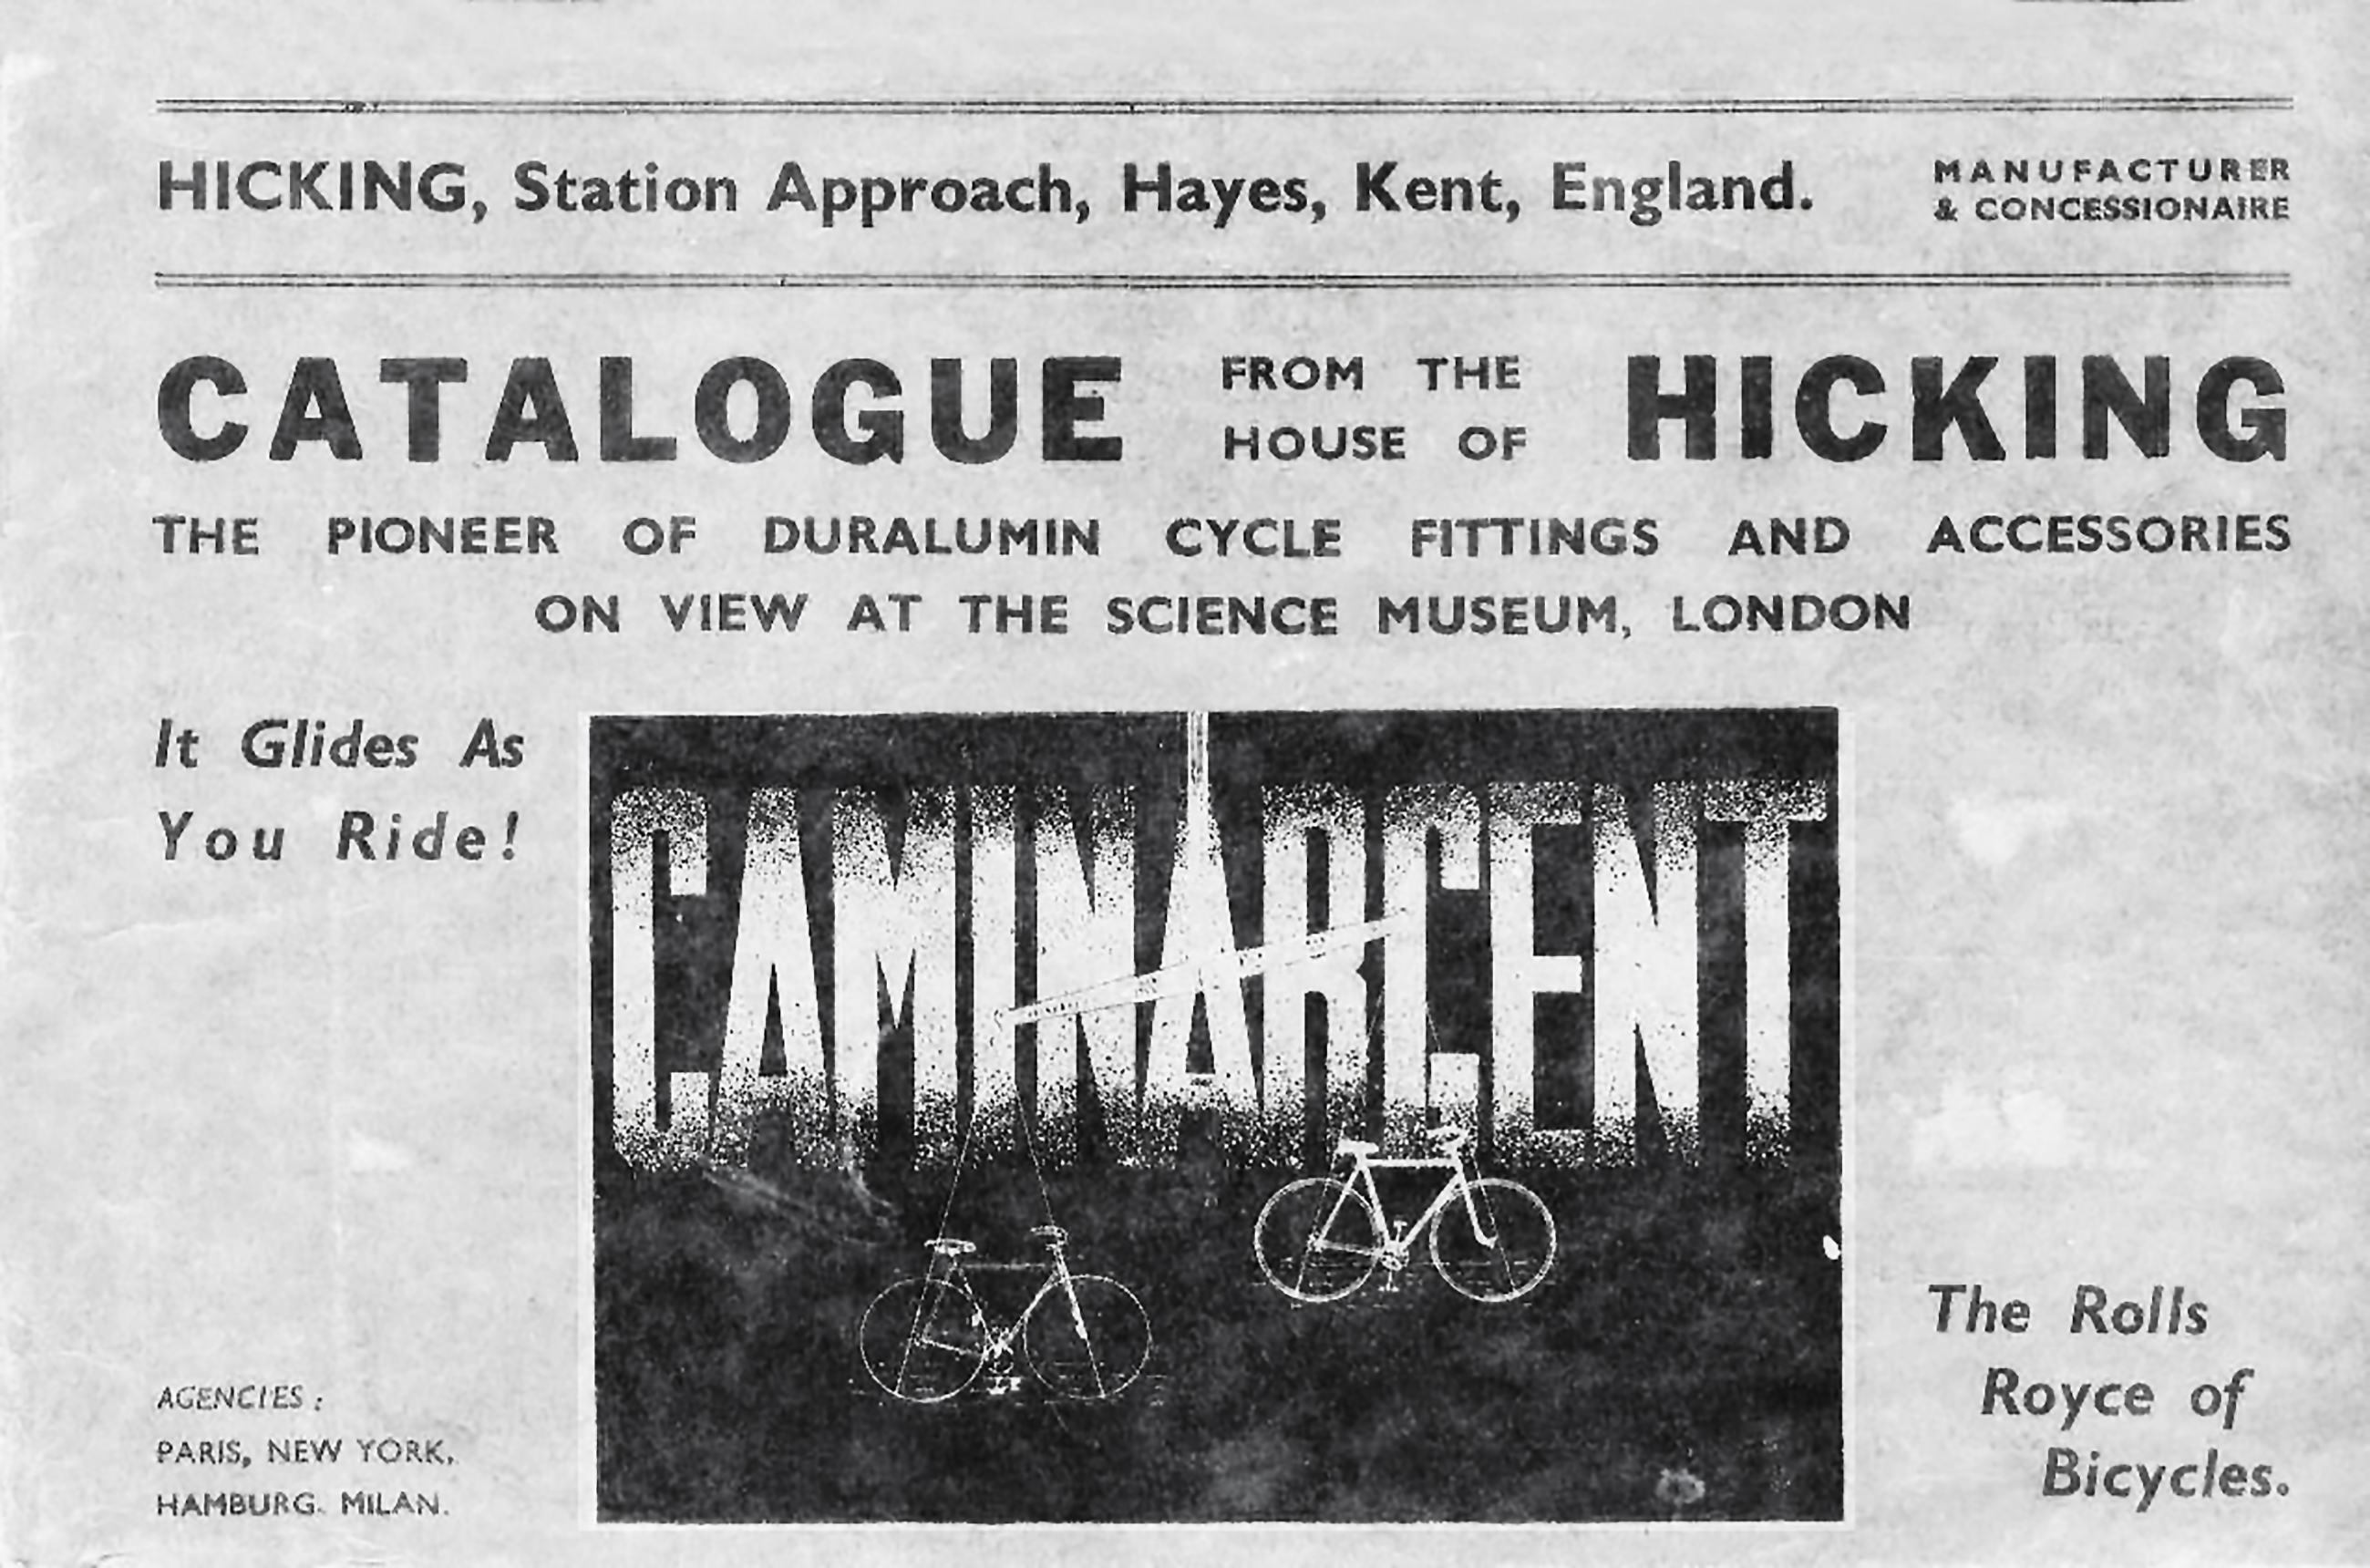 ebykr-caminargent-hicking-1937-catalog-cover